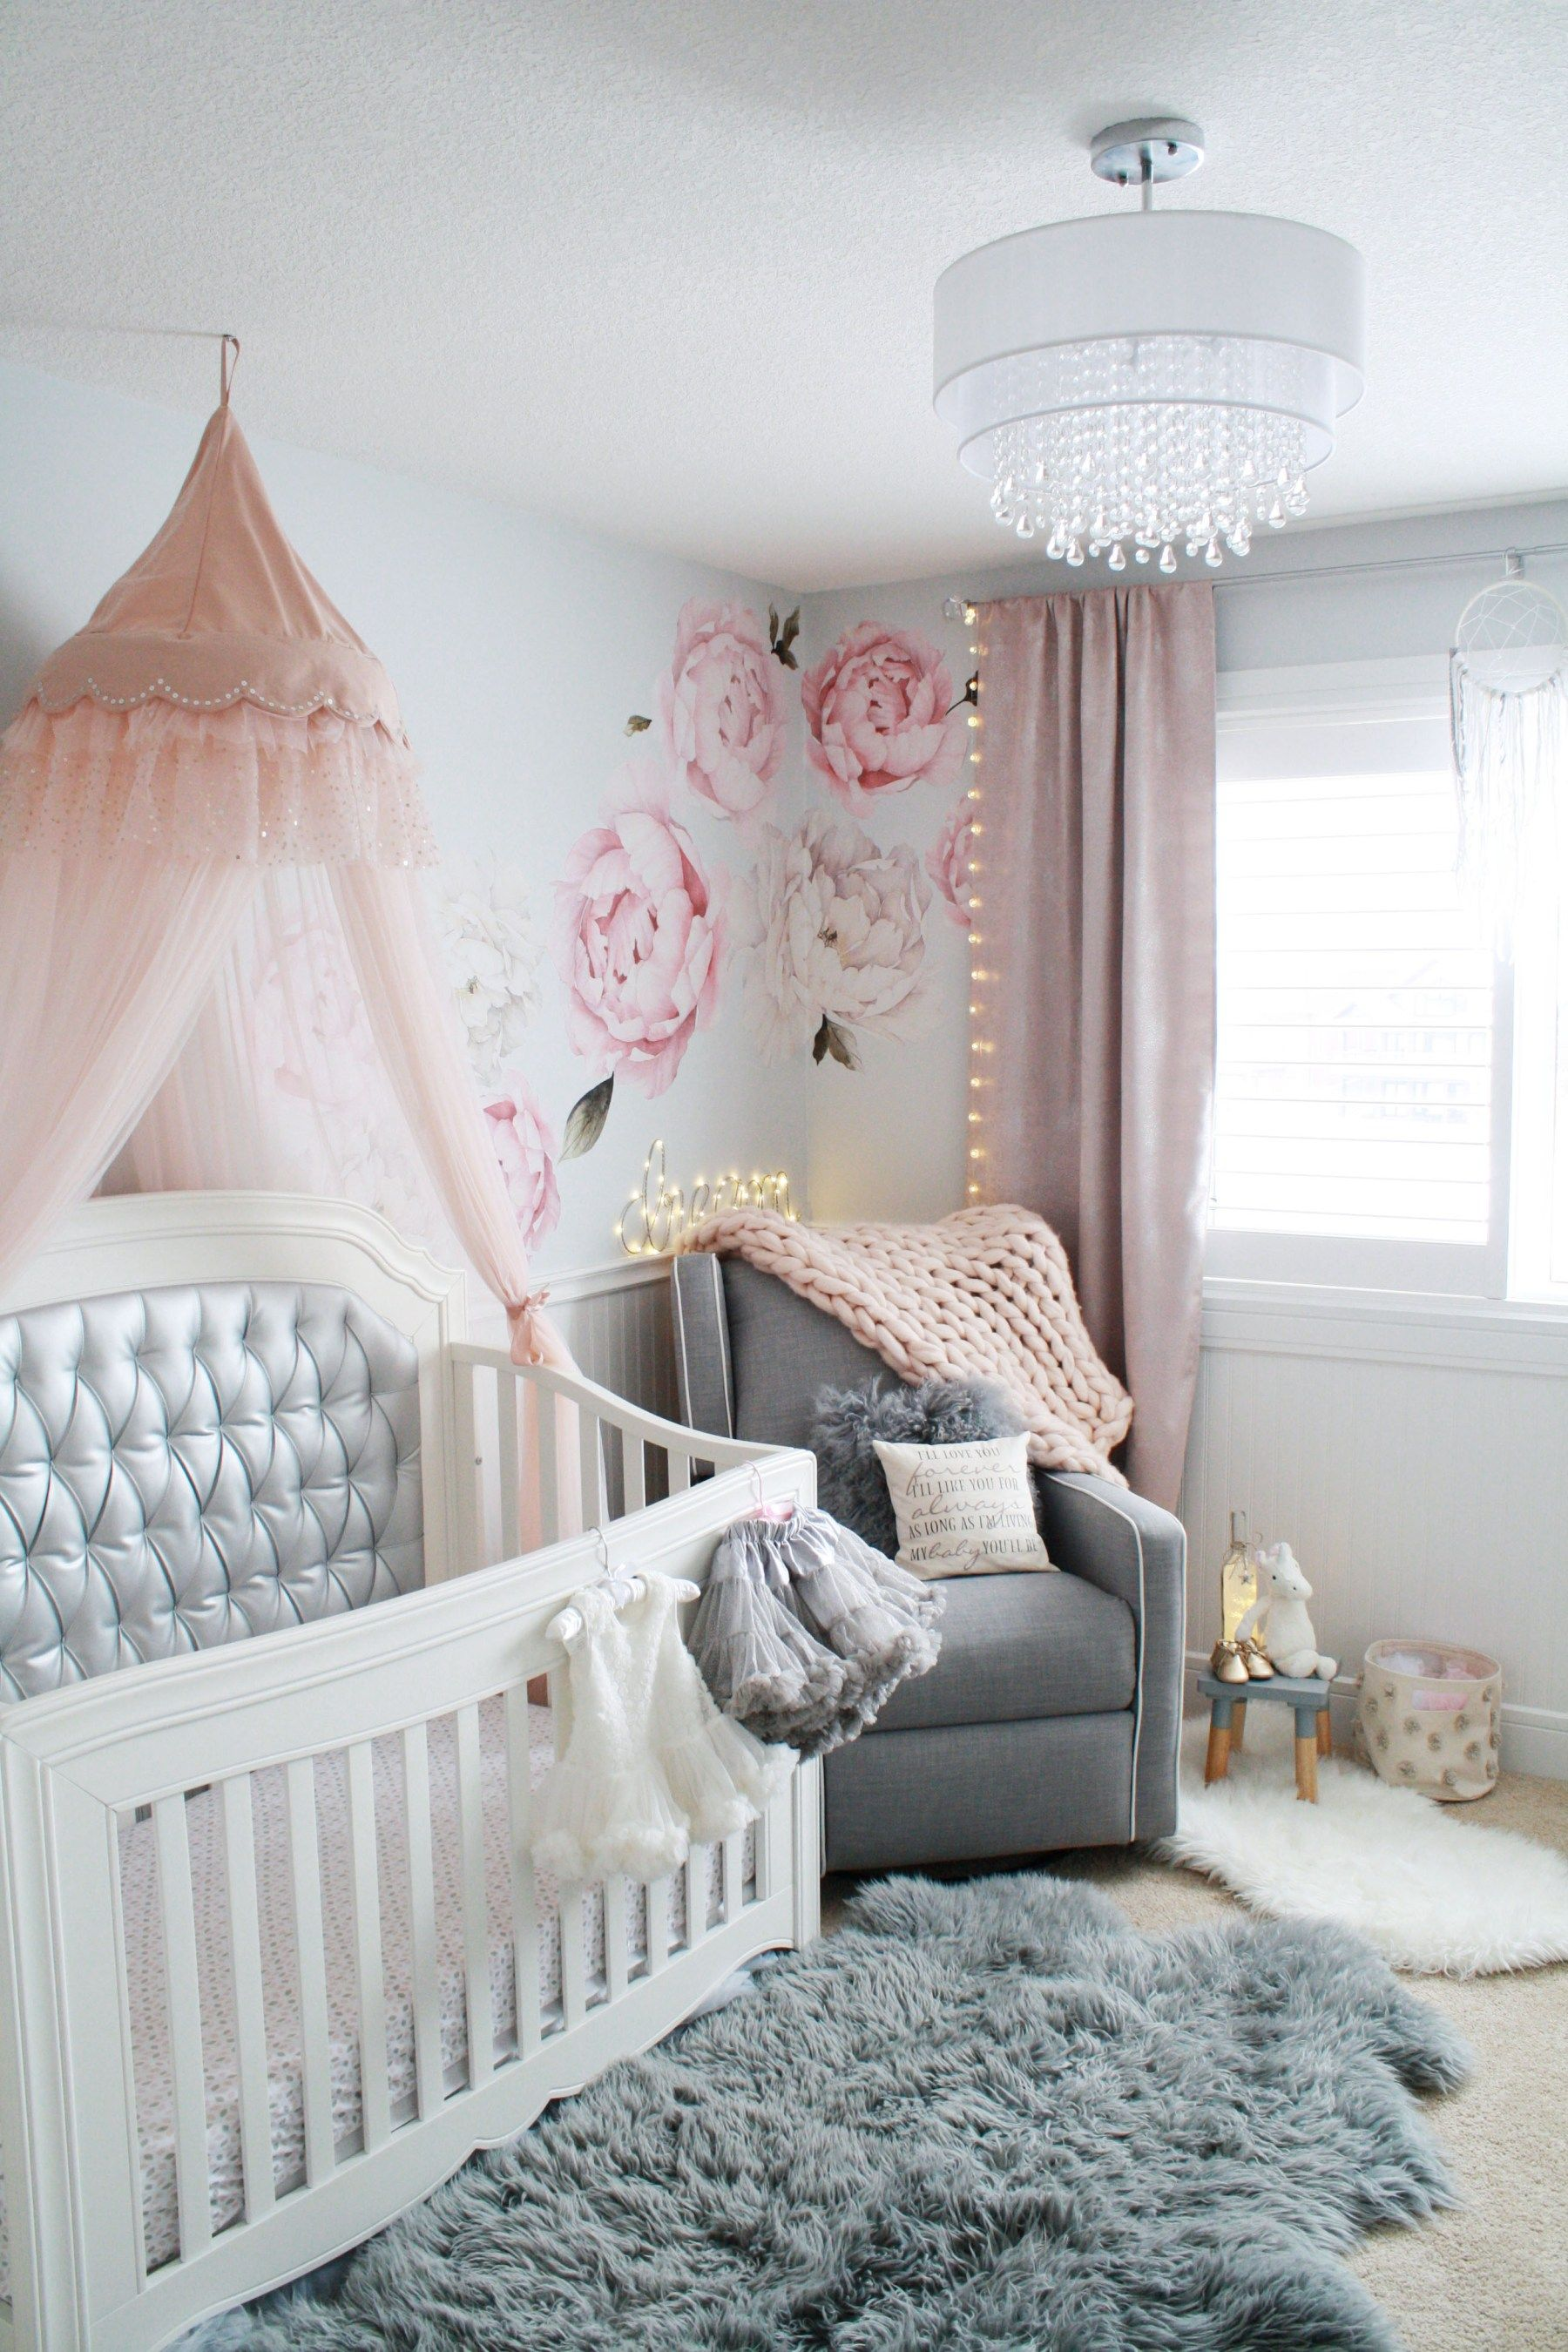 Baby Room Accessories: Glamorous Pink And Gray Nursery